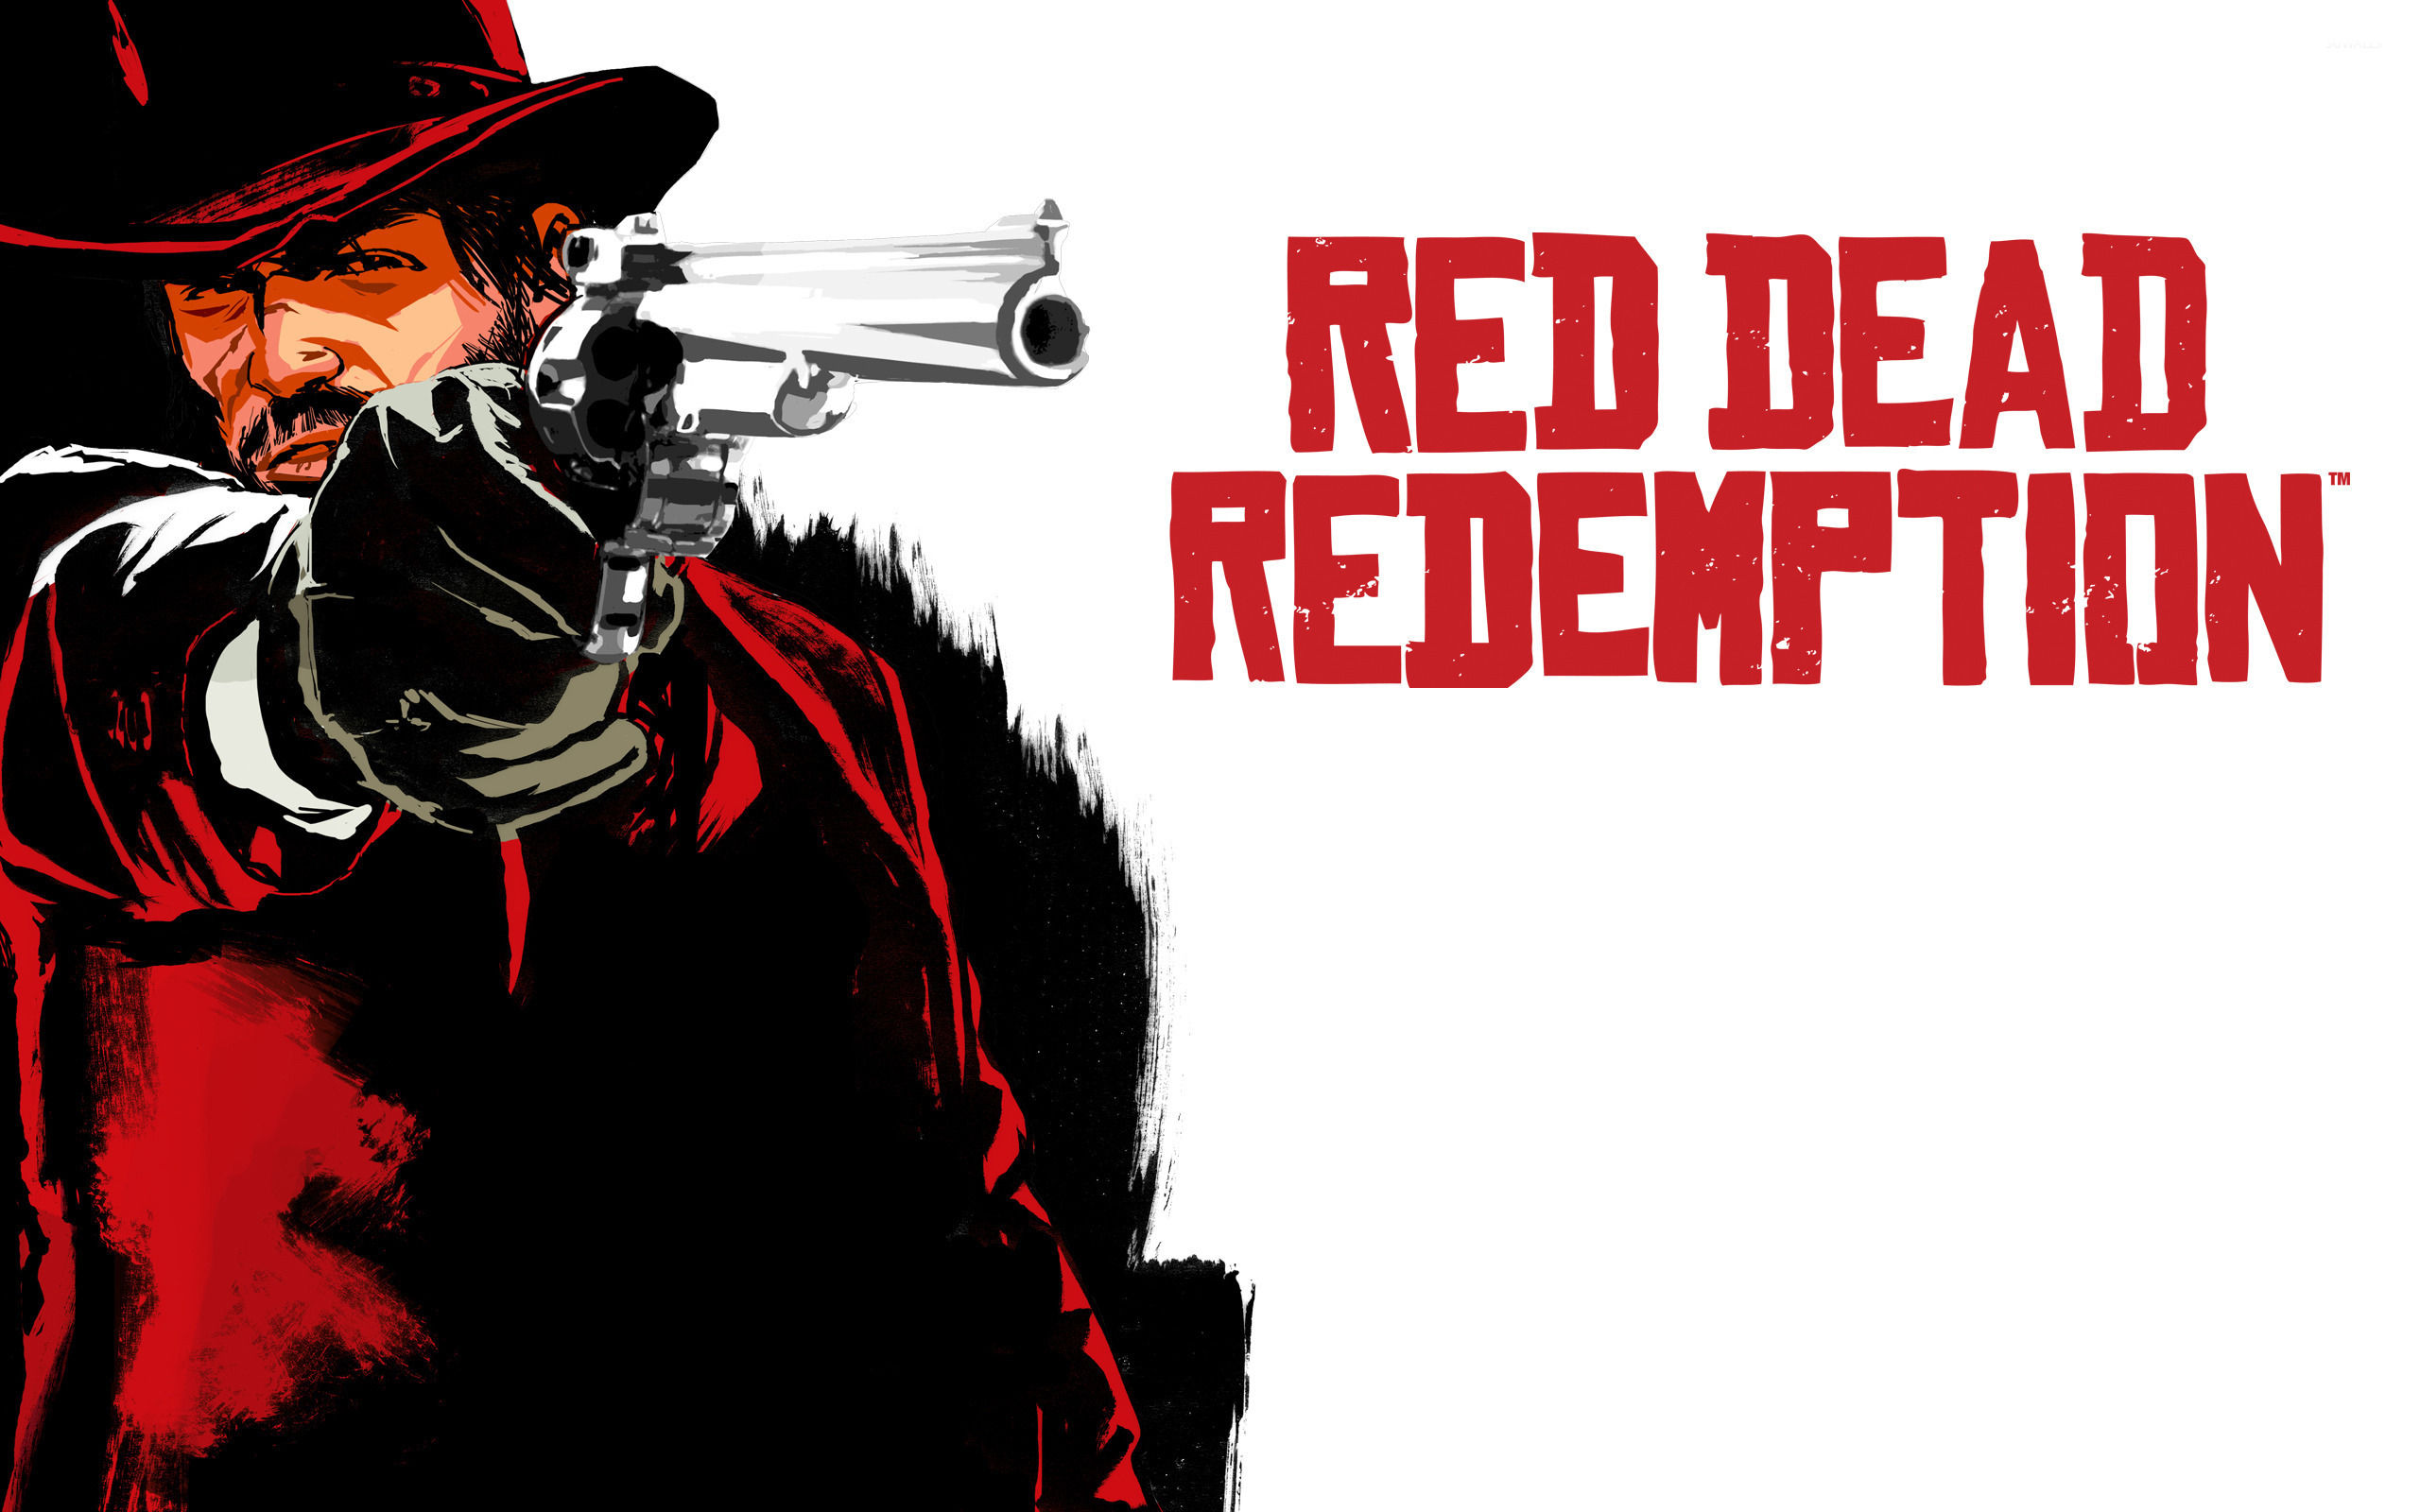 Red Dead Redemption wallpaper - Game wallpapers - #18344